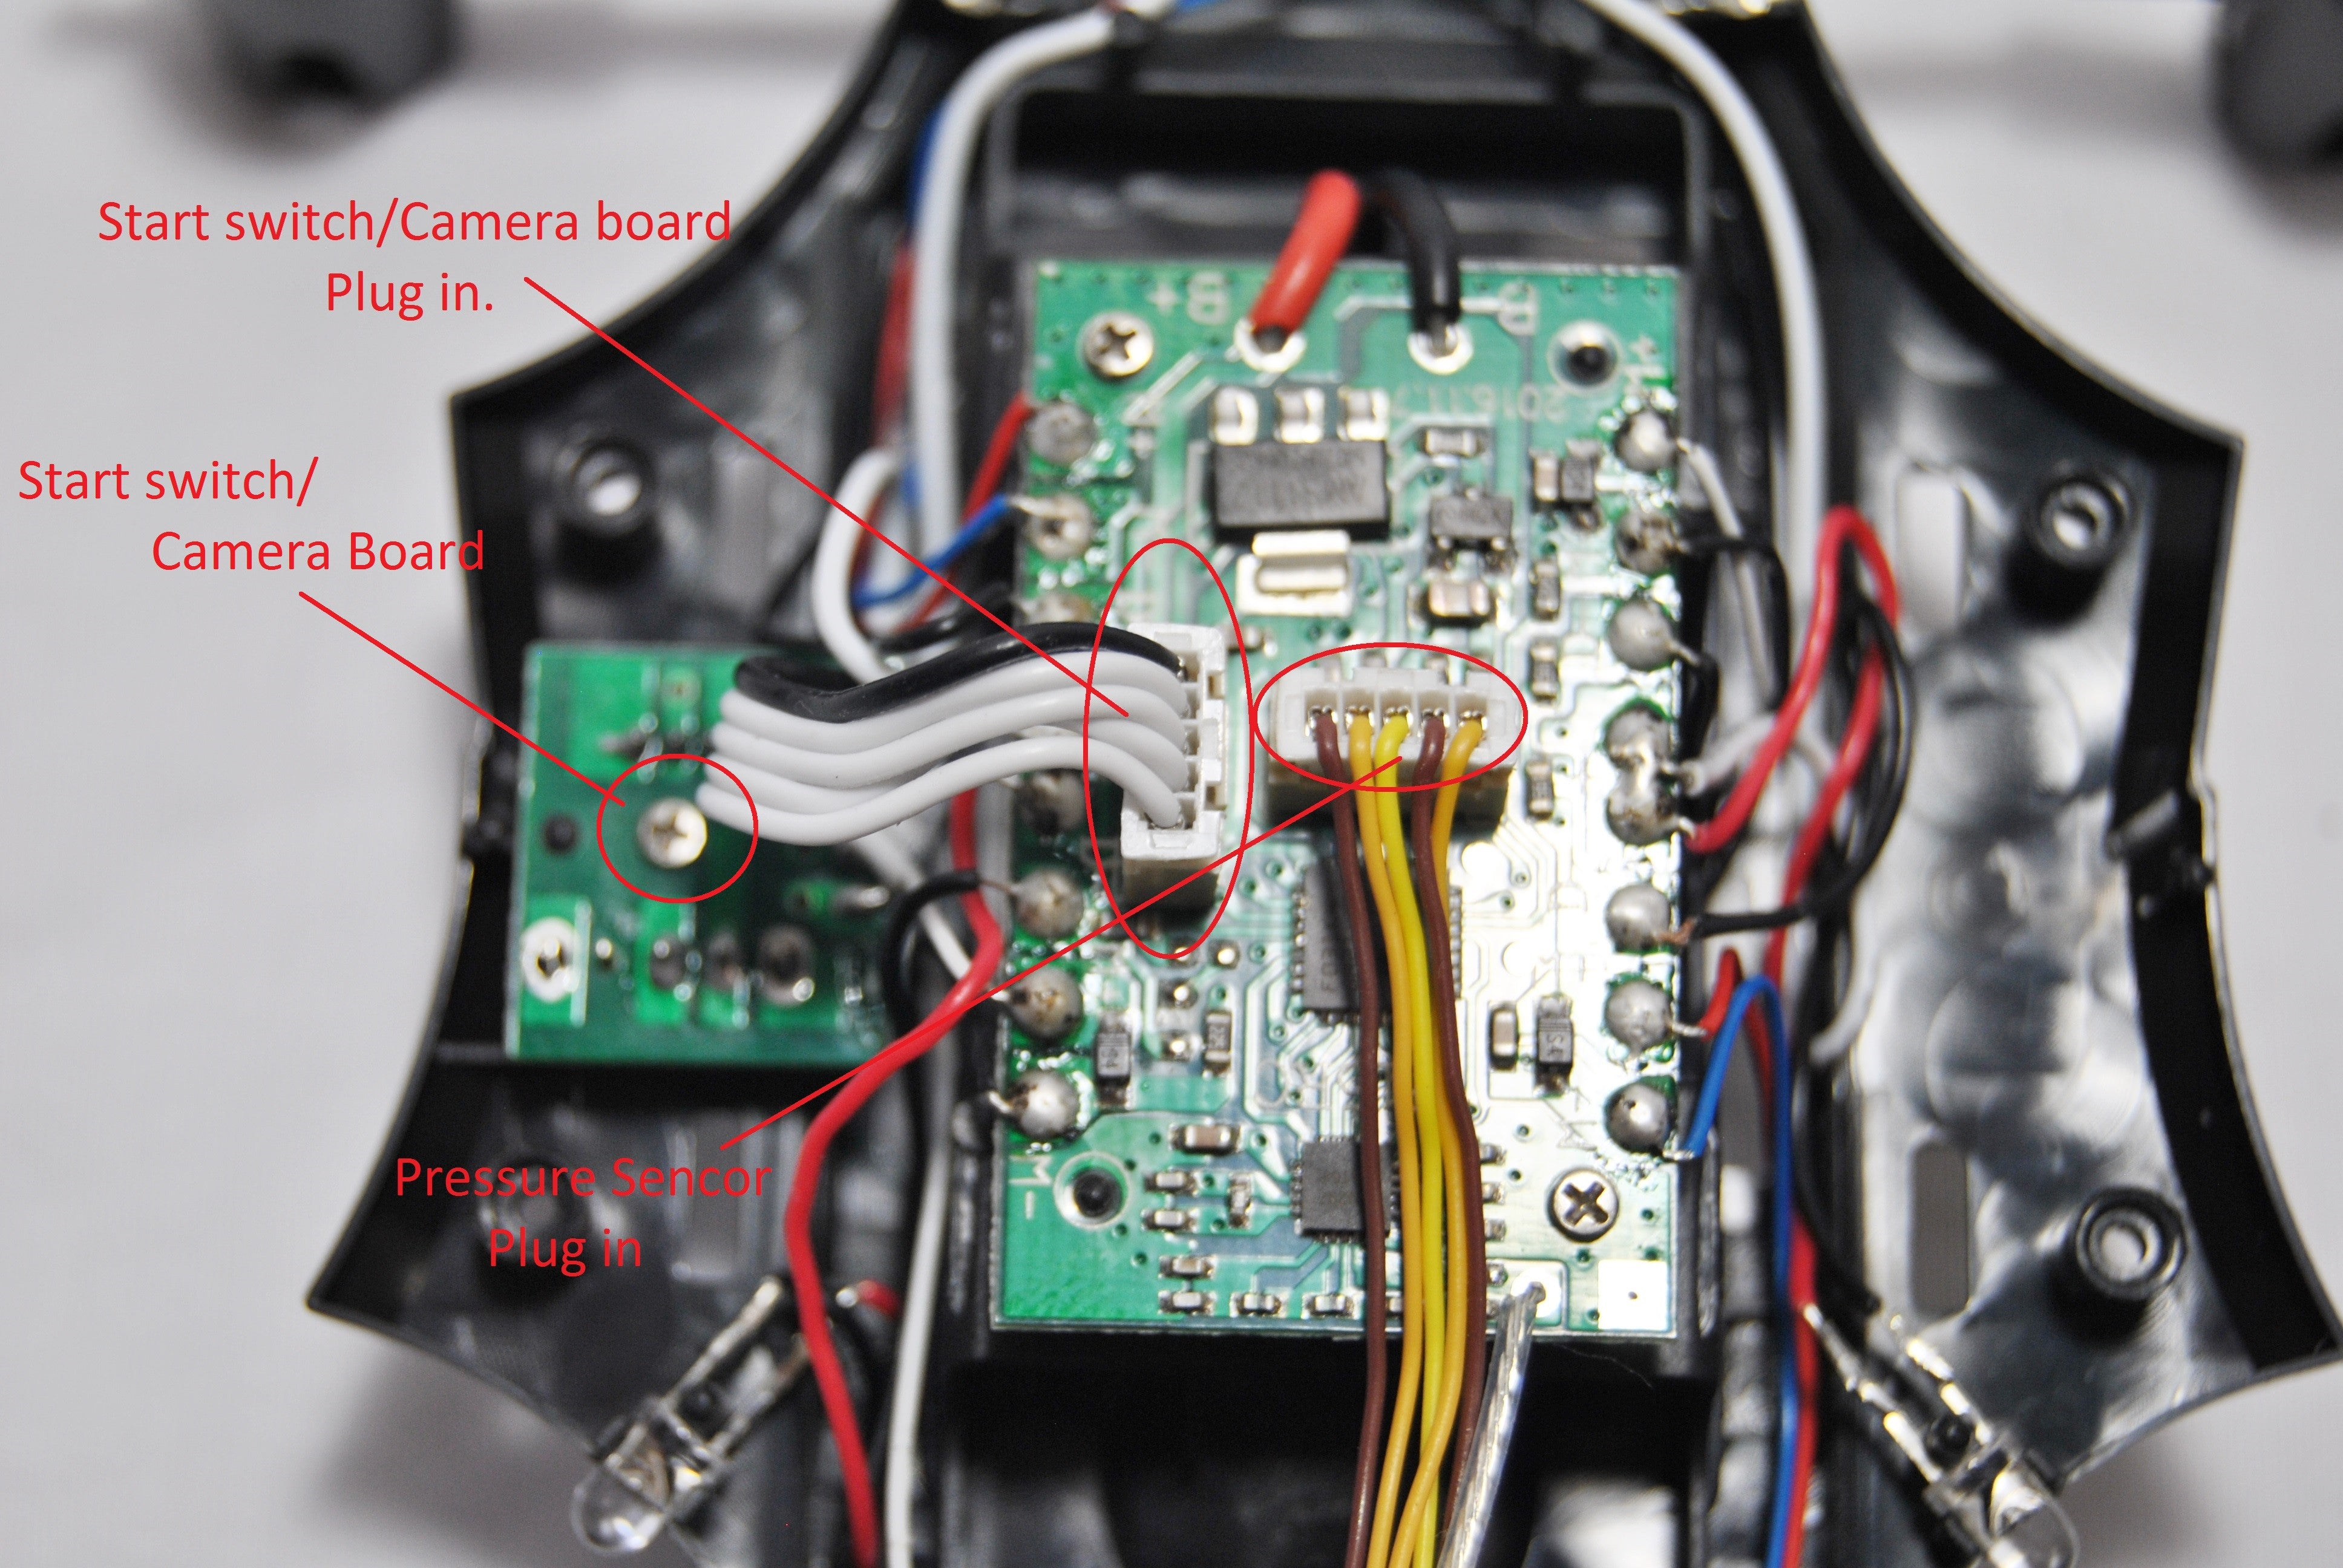 Burst Auto Faq Litehawk Shop Pull Start Engine Wiring Now Remove The Pressure Sensor Harness From Esc Use A Small Flat Screw Driver To Loosen It Up On All Sides So That You Dont Have